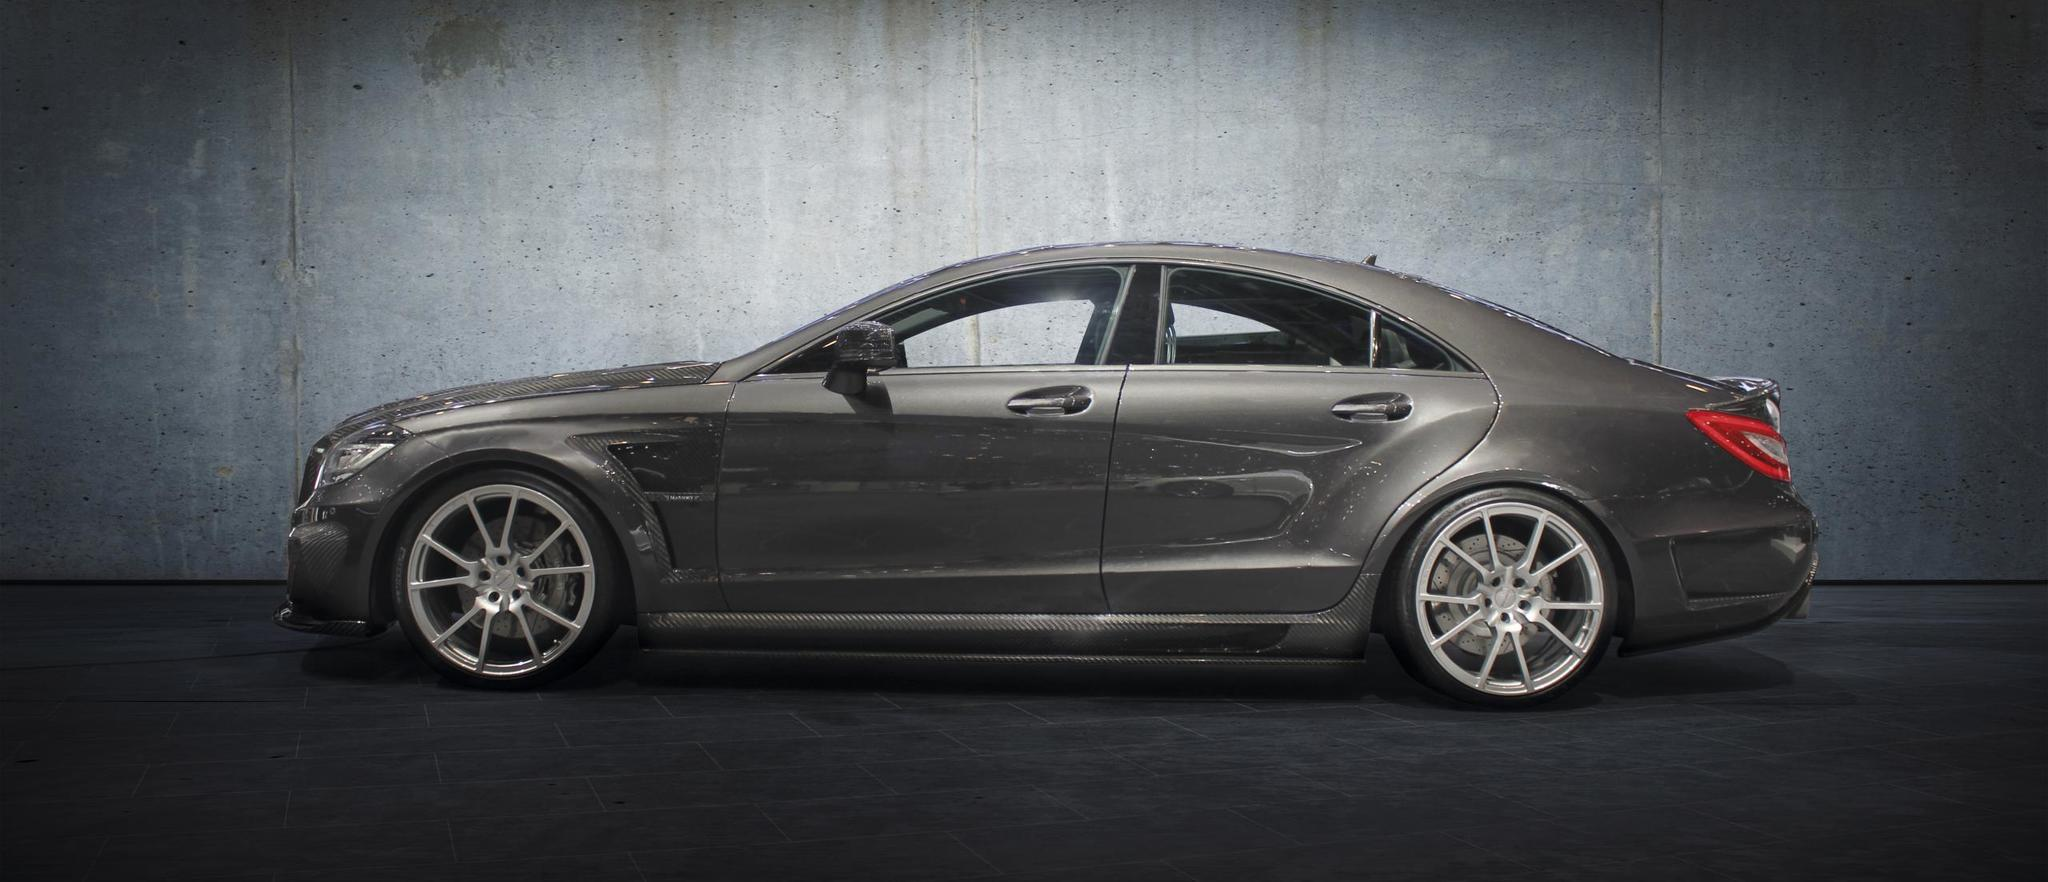 Mansory body kit for Mercedes-Benz CLS carbon